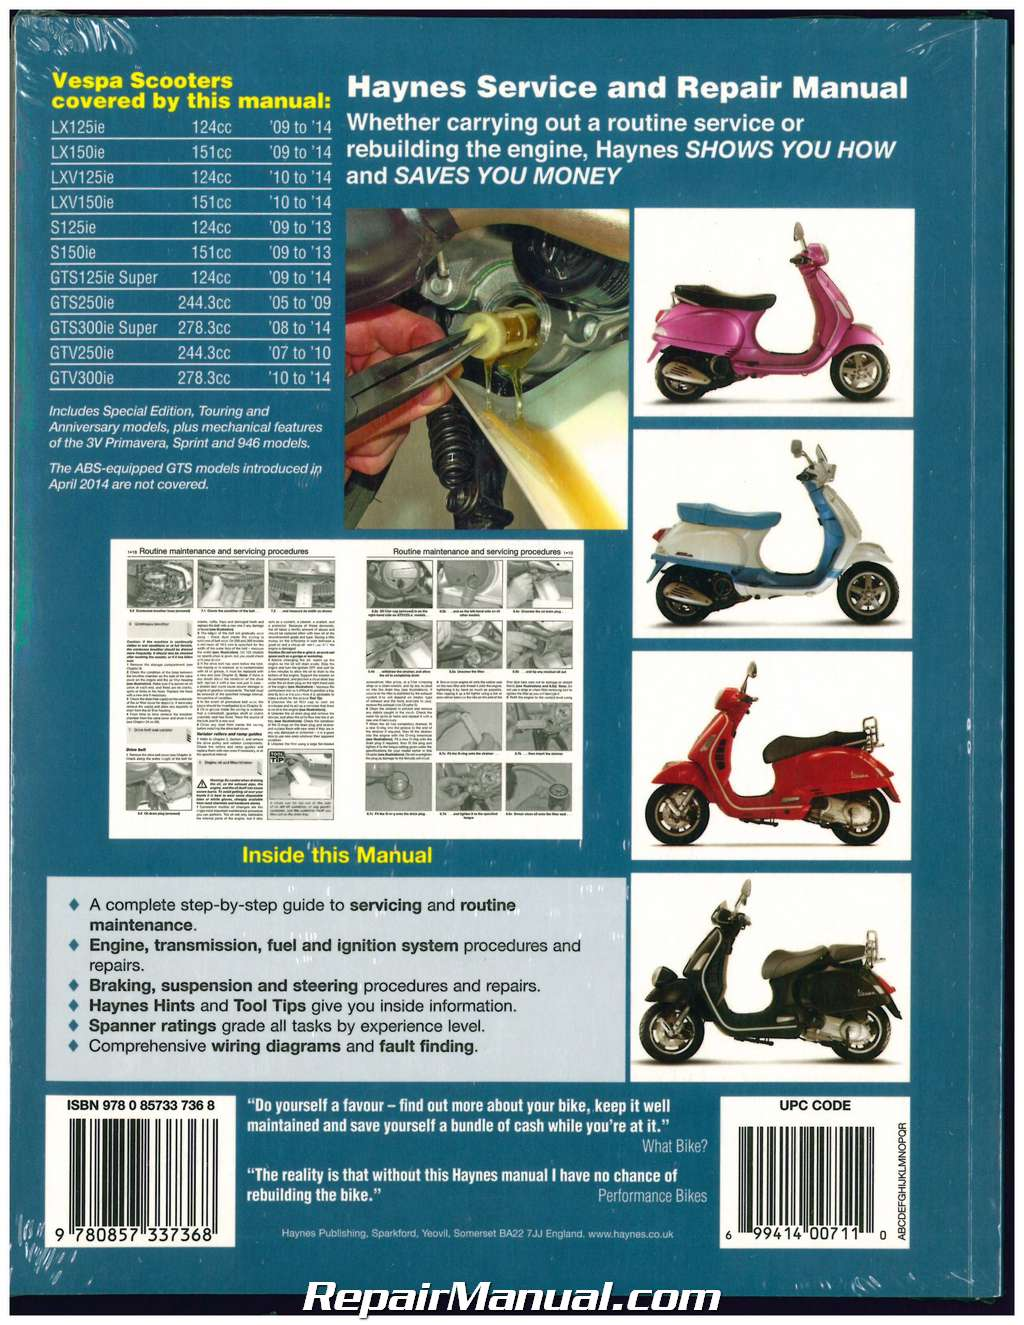 Piaggio Mp3 250 Ie 2006 2007 2008 2009 Repair Manual Auto Cannondale Atv Wiring Schematic Vespa Scooters Haynes 2005